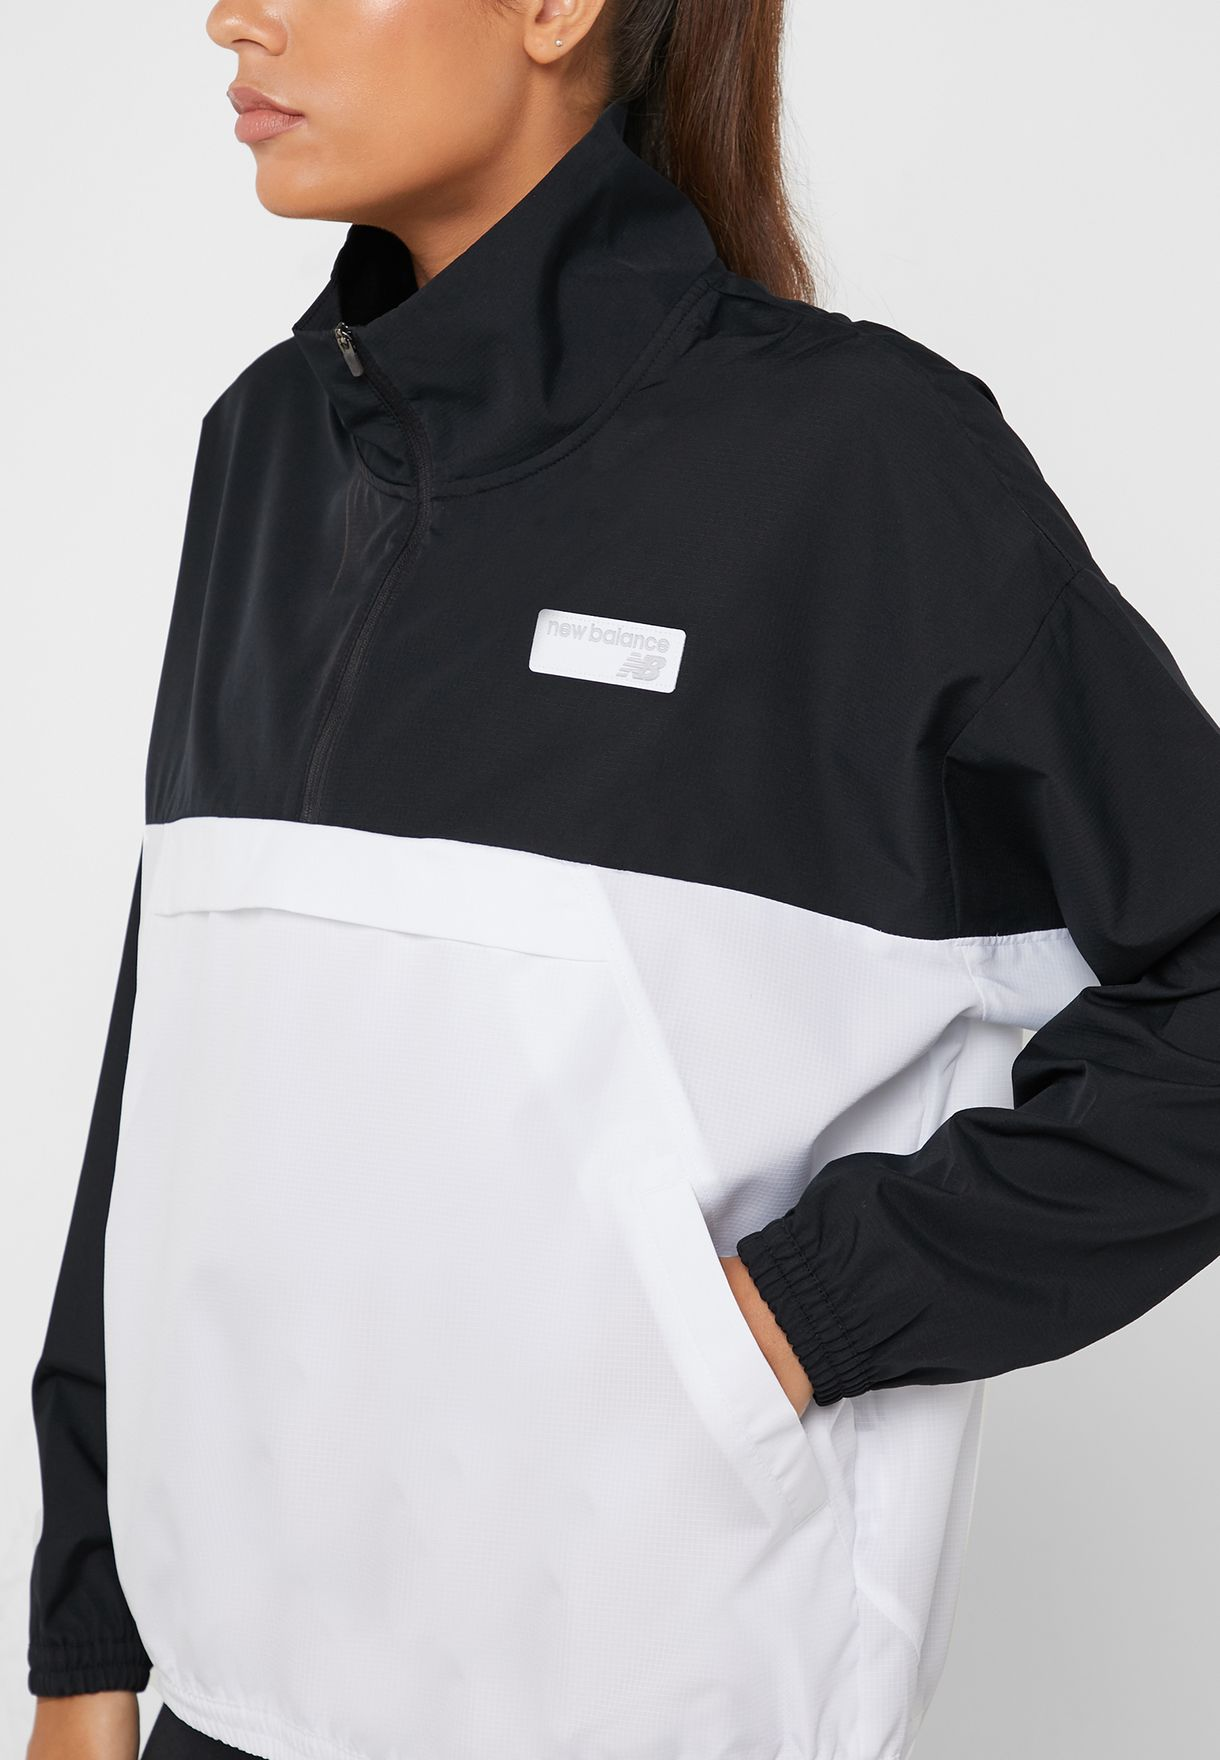 Athletics Windbreaker Jacket